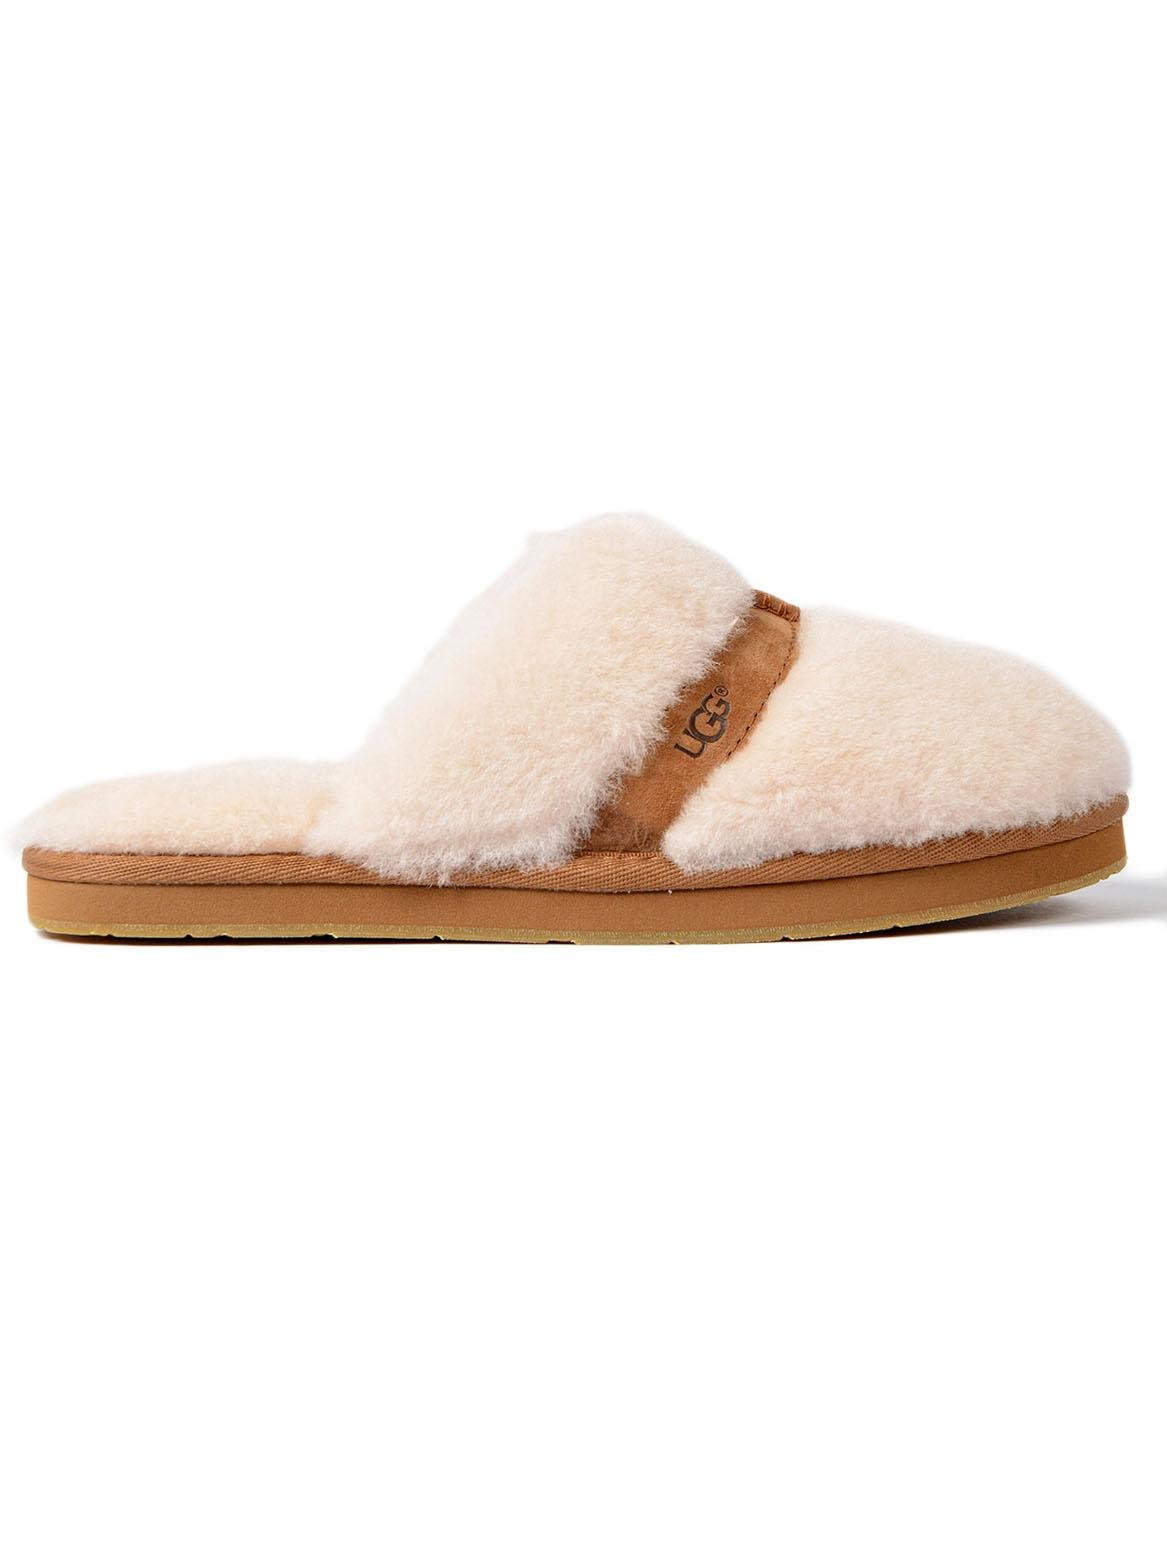 336ddde36b6 Ugg Dalla Slip in Natural - Lyst